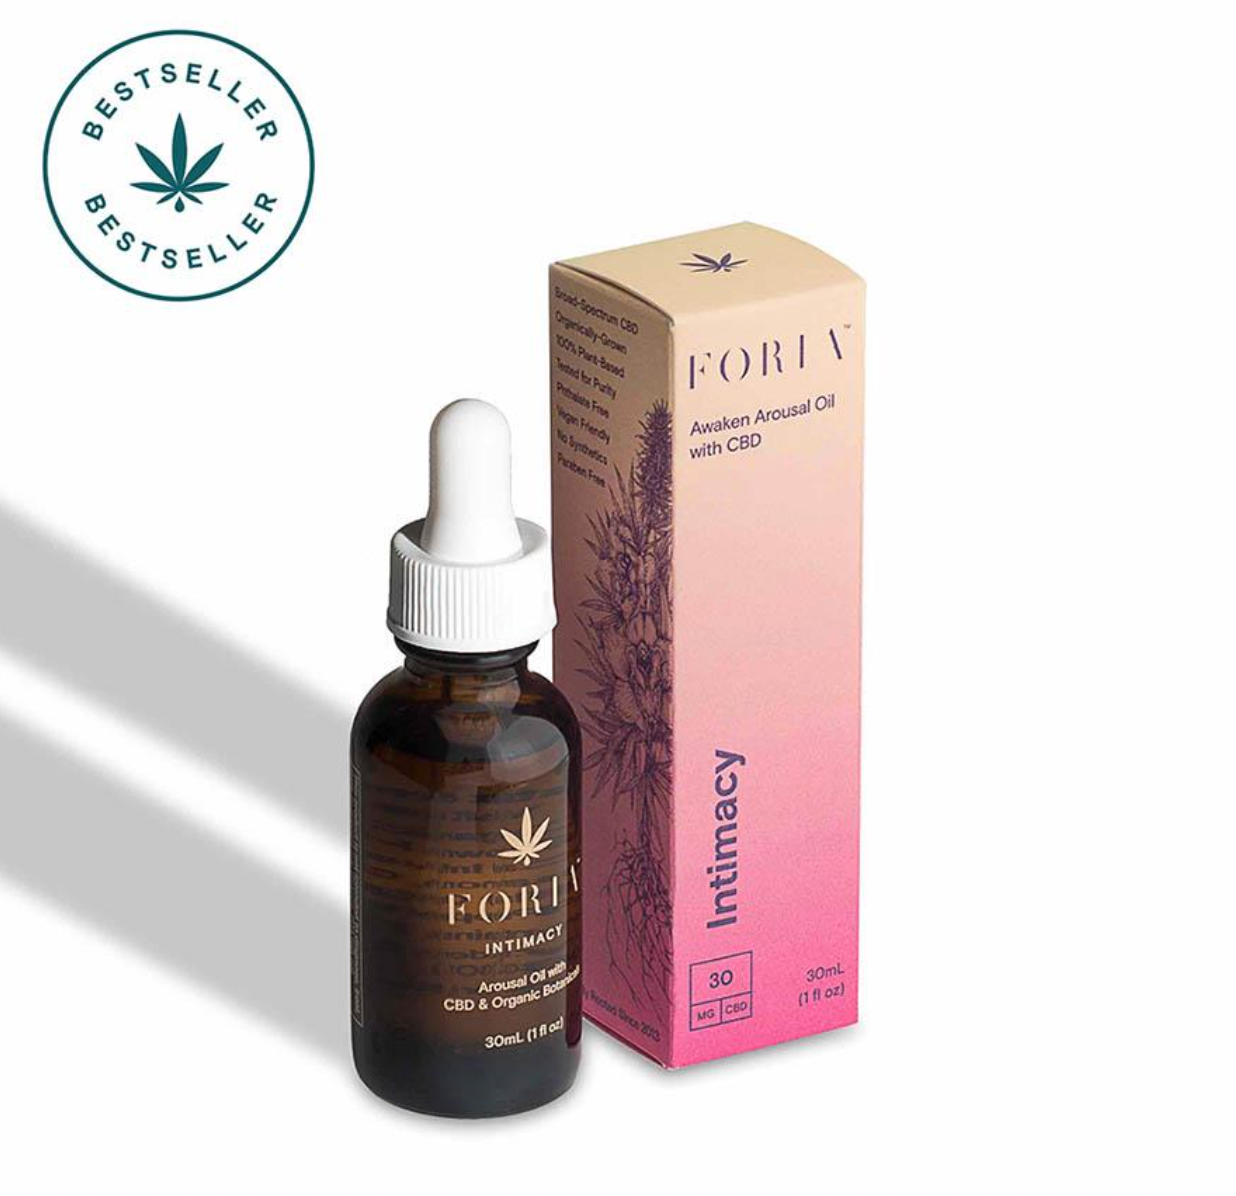 Foria Awaken Arousal CBD Pleasure Oil